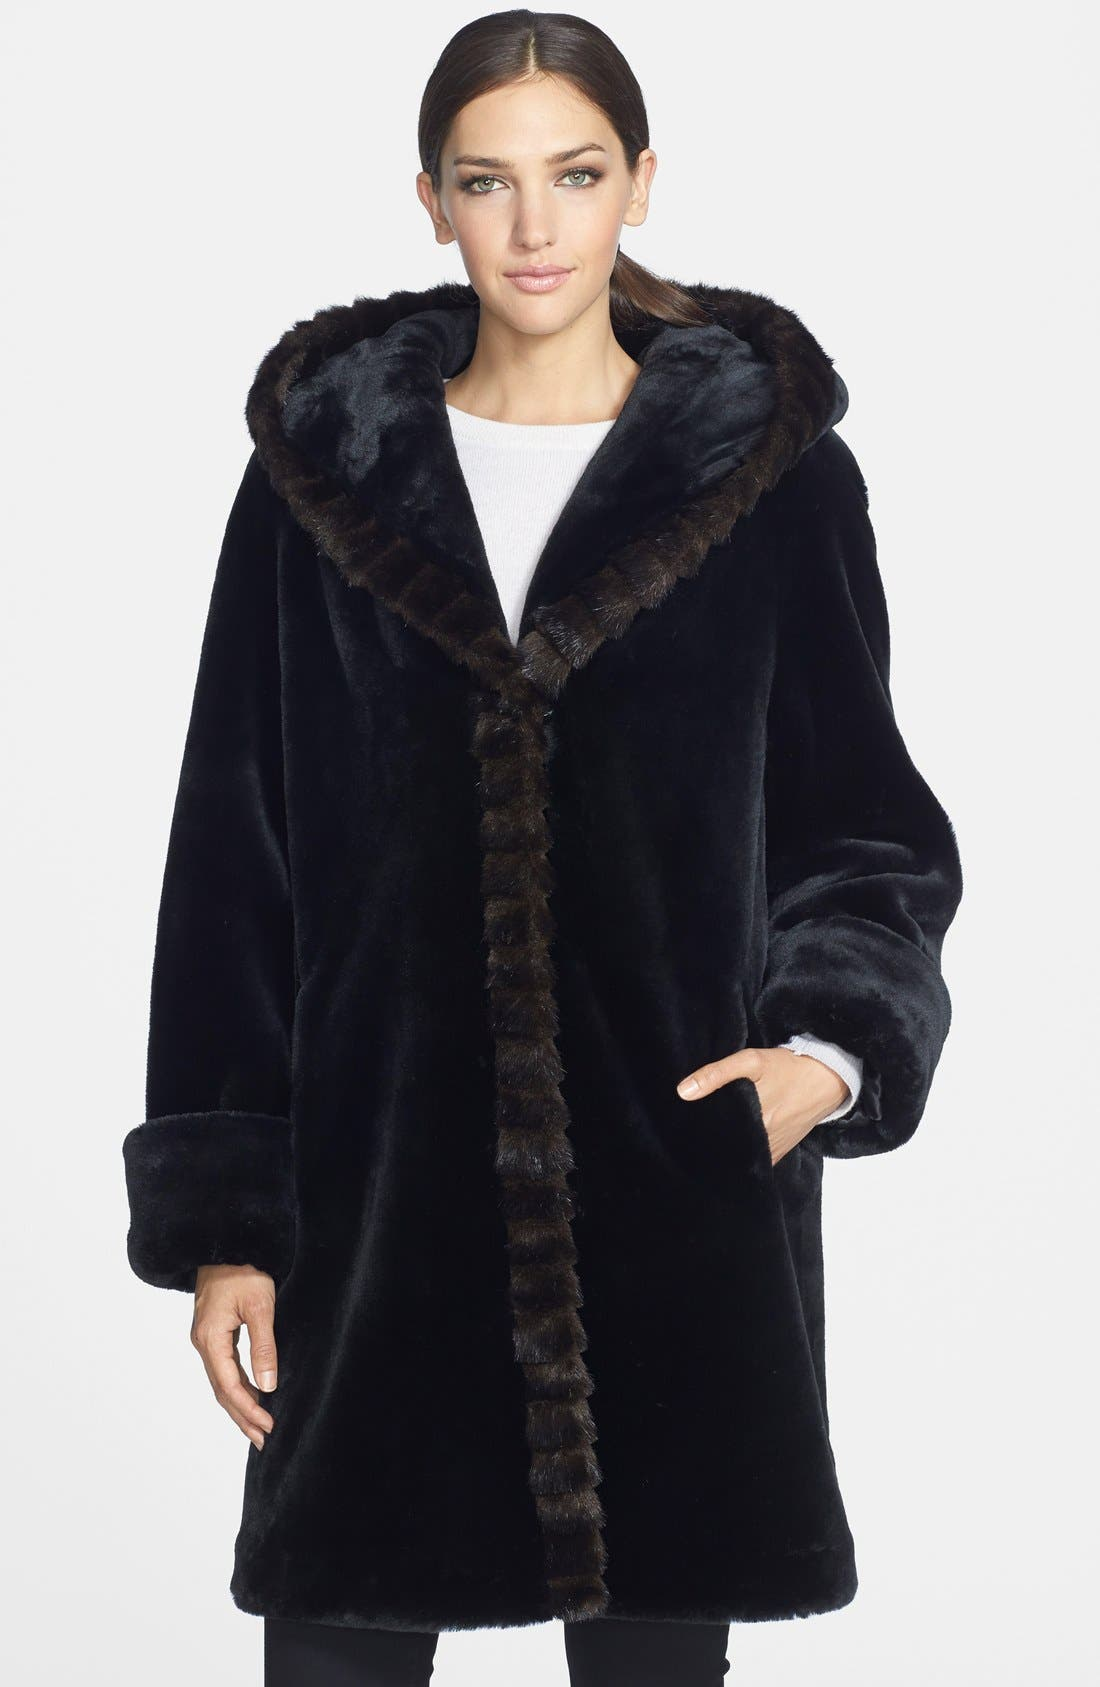 Alternate Image 1 Selected - Gallery Hooded Faux Fur Walking Coat (Online Only)